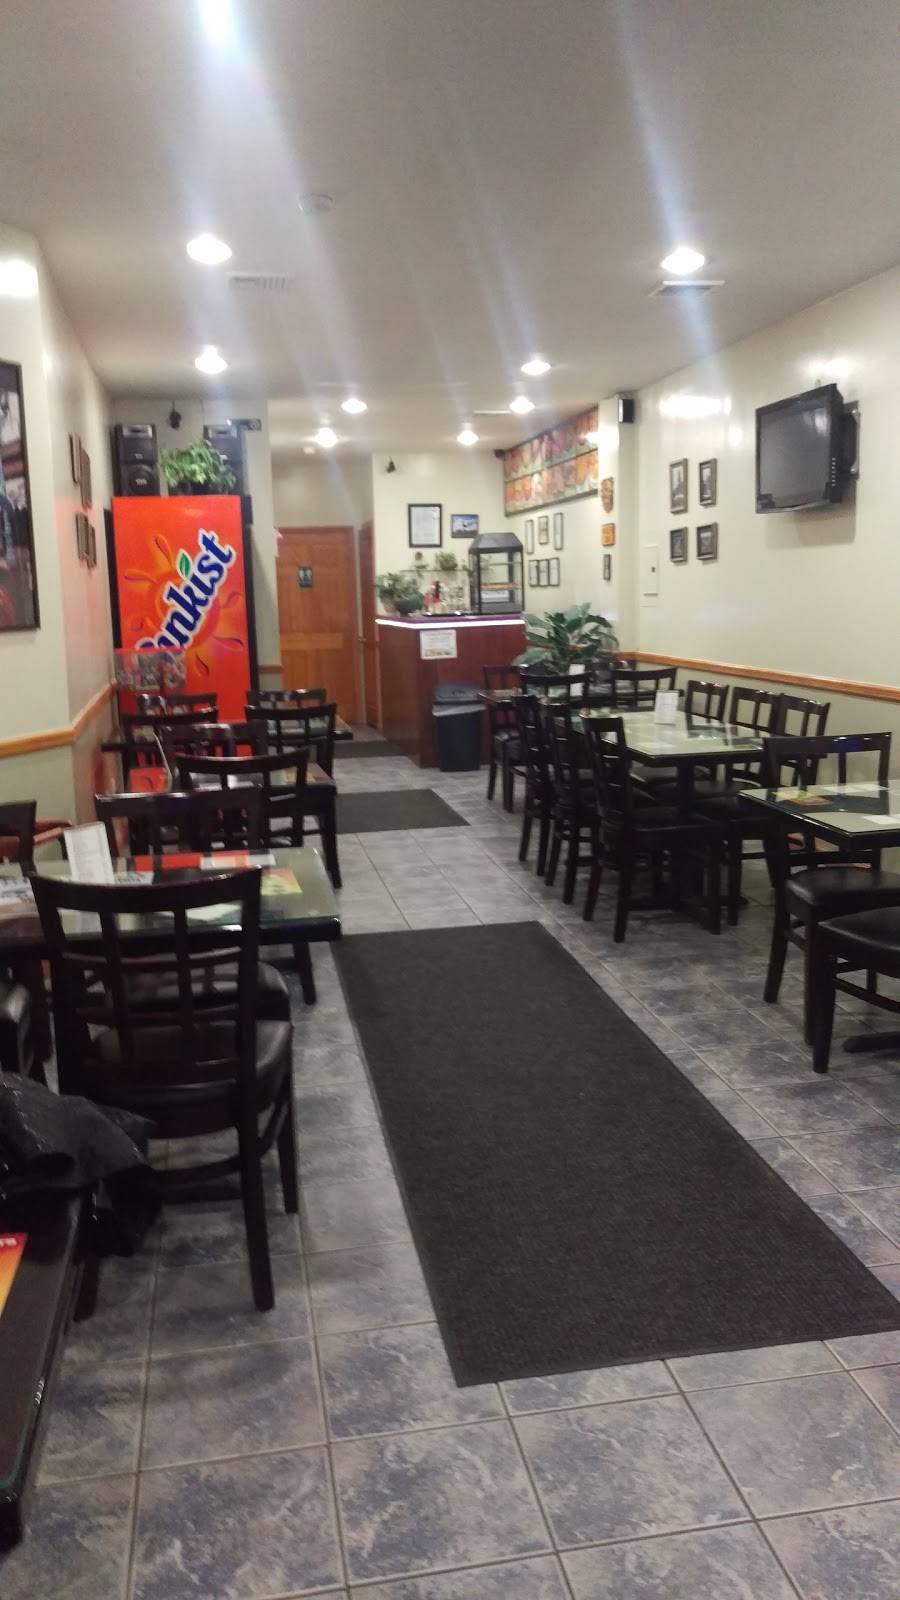 Burana Pizzeria & Restaurant | meal delivery | 6310 Park Ave, West New York, NJ 07093, USA | 2014309706 OR +1 201-430-9706